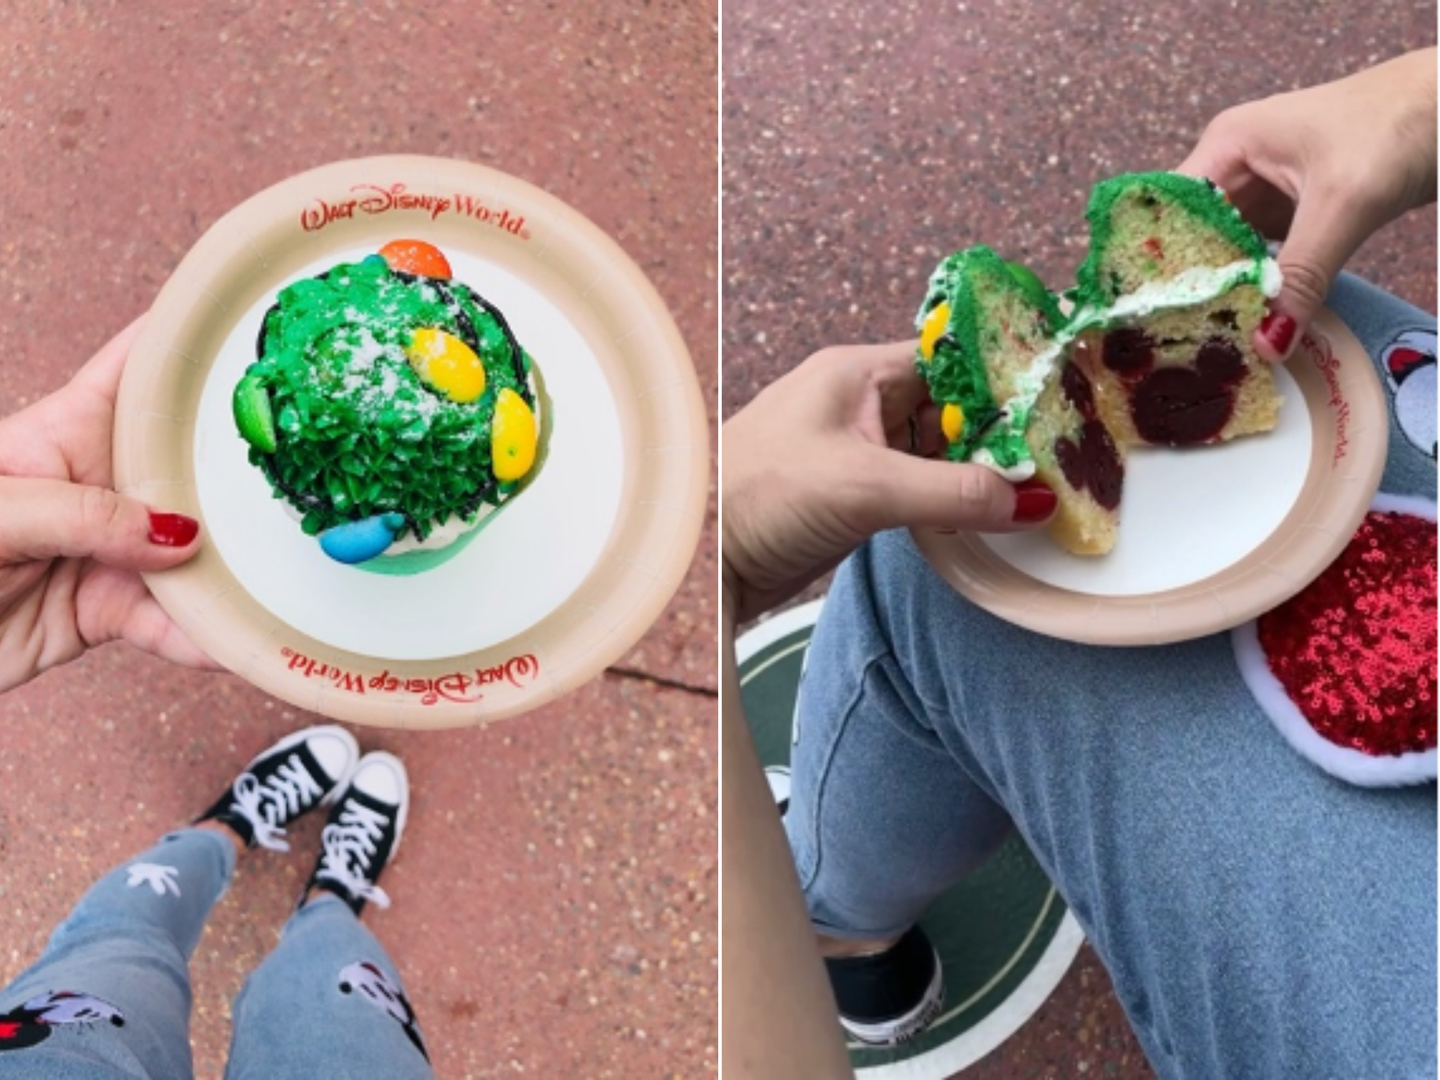 Left: The Twice Upon a Cupcake from Main Street Bakery at Magic Kingdom Park. Right: The inside of the cupcake featuring a 'hidden Mickey' made from chocolate icing at Walt Disney World® Resort.